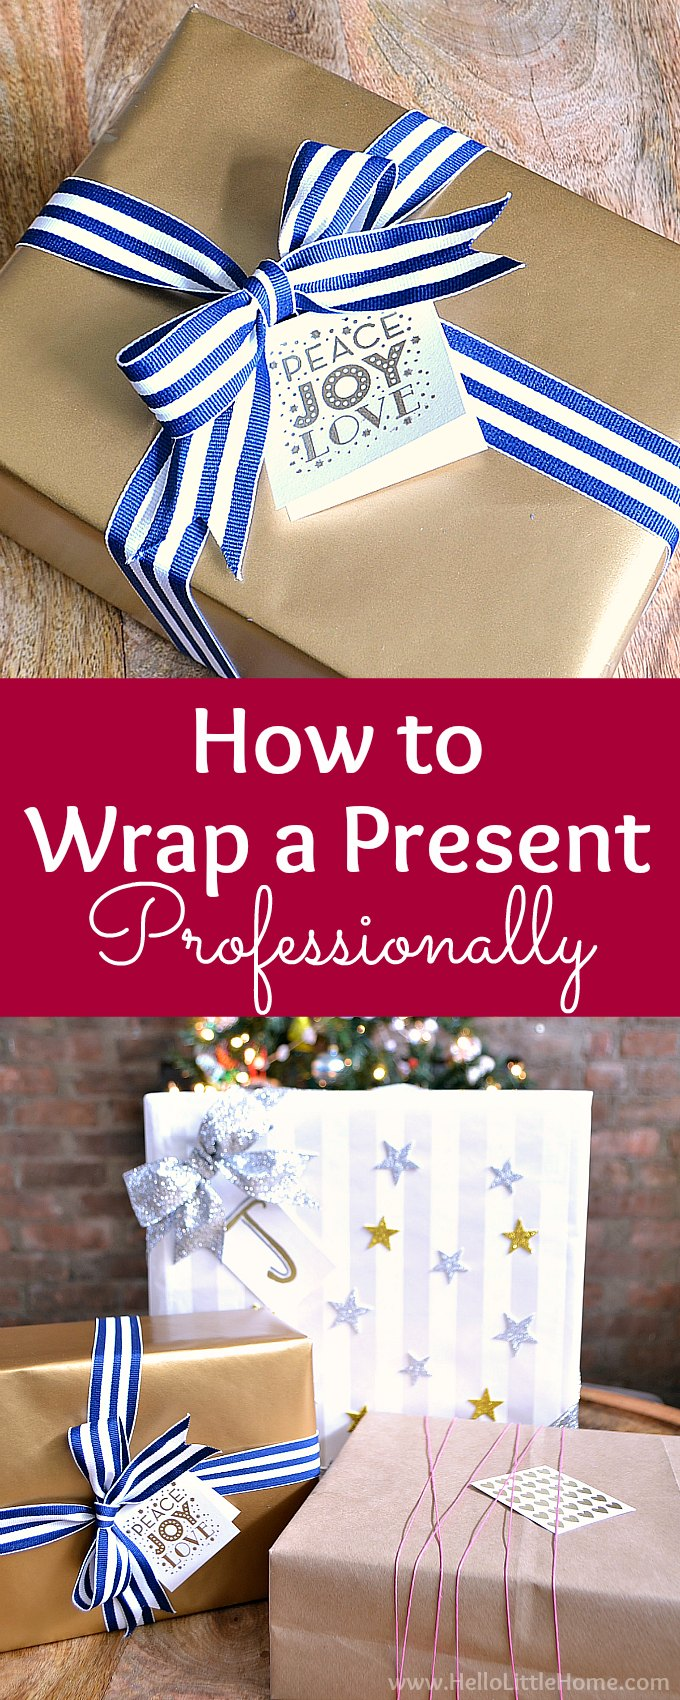 How to Wrap a Present Professionally! Wrap gifts like a pro with this easy tutorial that shows you how to wrap a present perfectly step by step. These easy gift wrapping tips work for any size box. Follow this simple present wrapping tutorial for beautifully wrapped presents every time. The best way to wrap a present! Plus, tips for wrapping oddly shaped gifts. | Hello Little Home